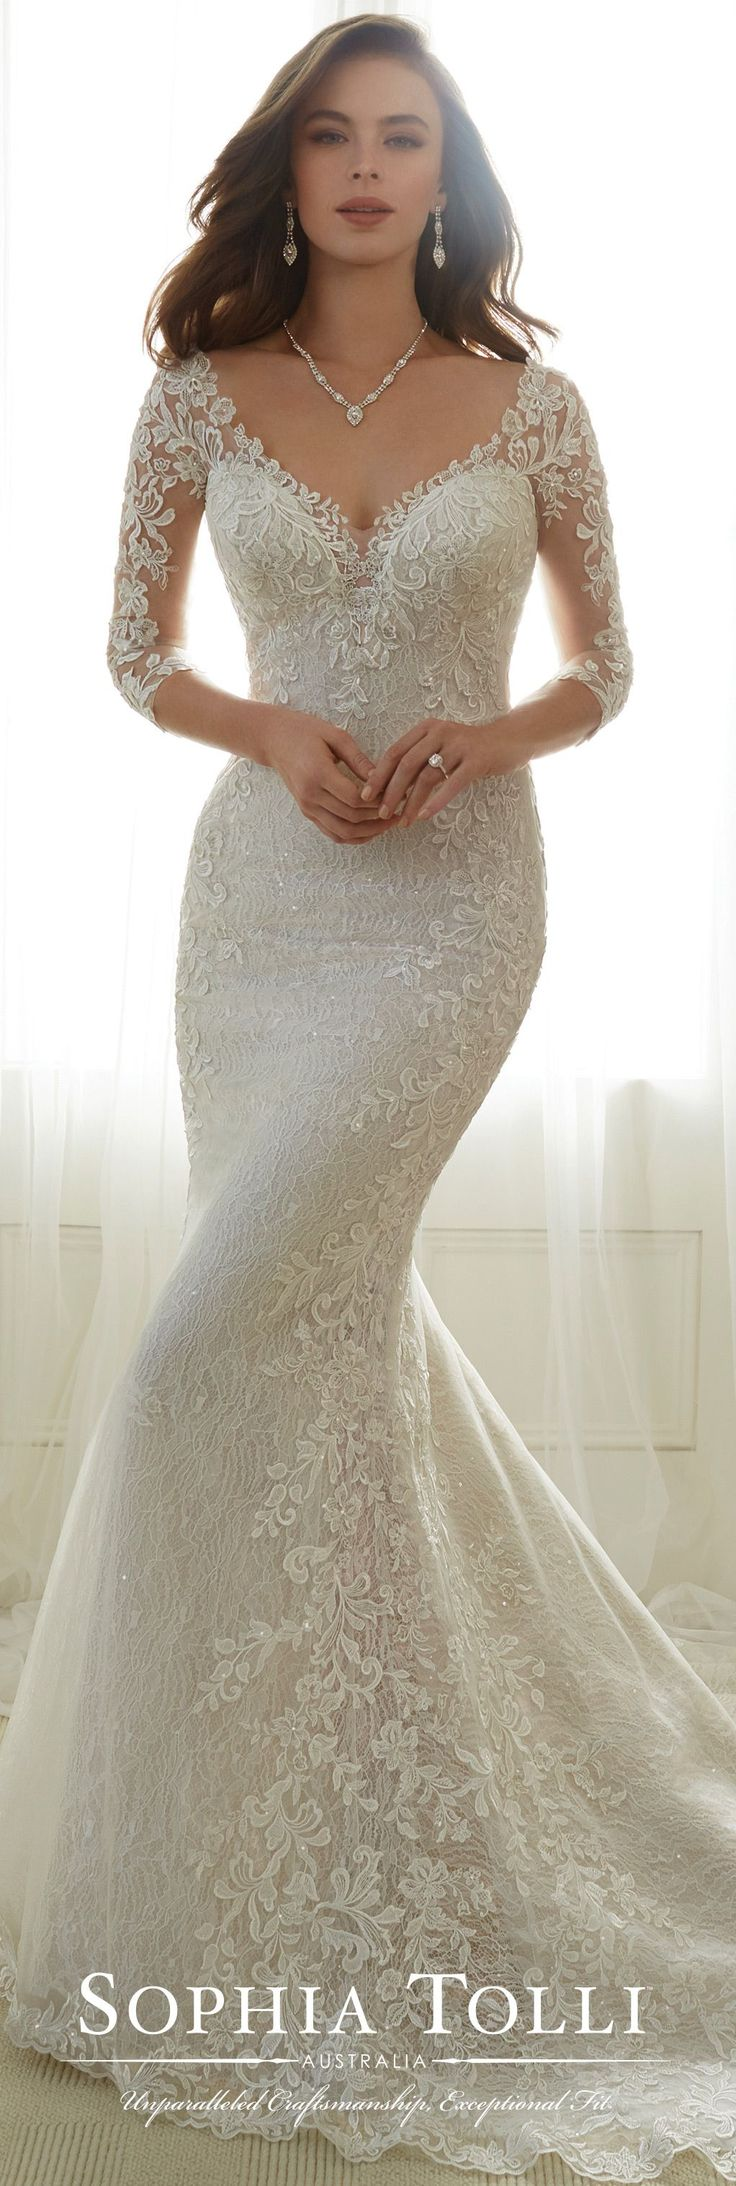 Tulle Soft Trumpet Wedding Gown - Sophia Tolli Y11702 | Trumpets ...